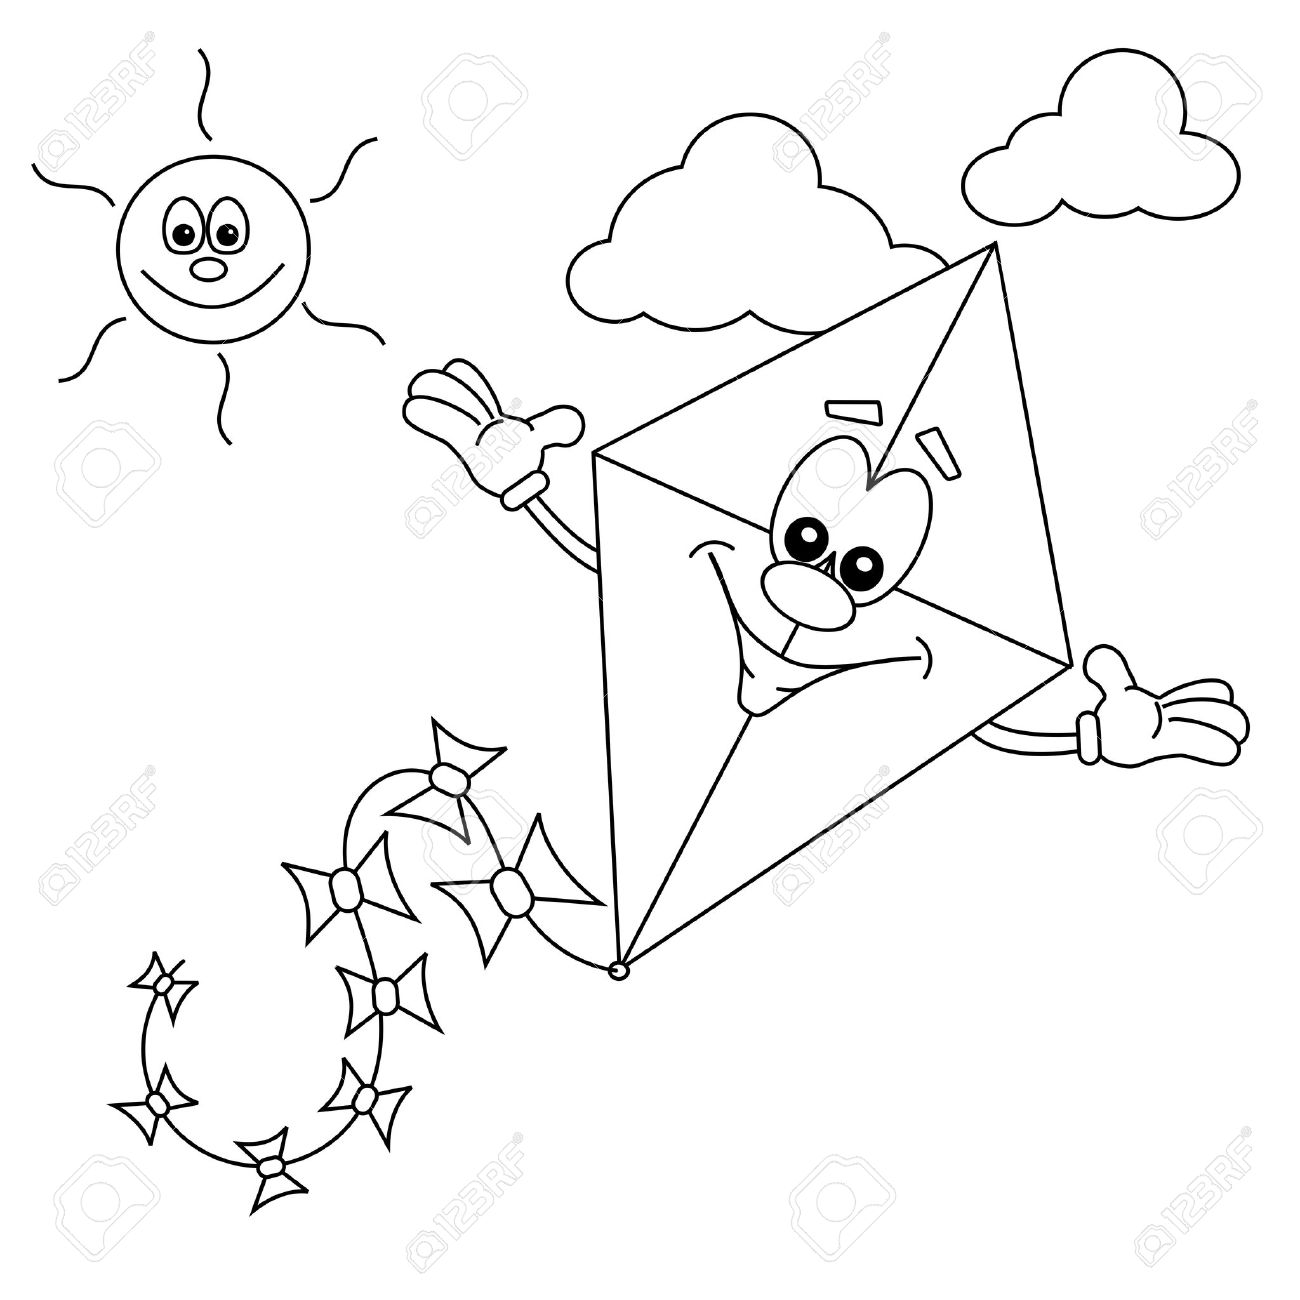 Cartoon Kite Outline For Colouring In Book Royalty Free Cliparts ...